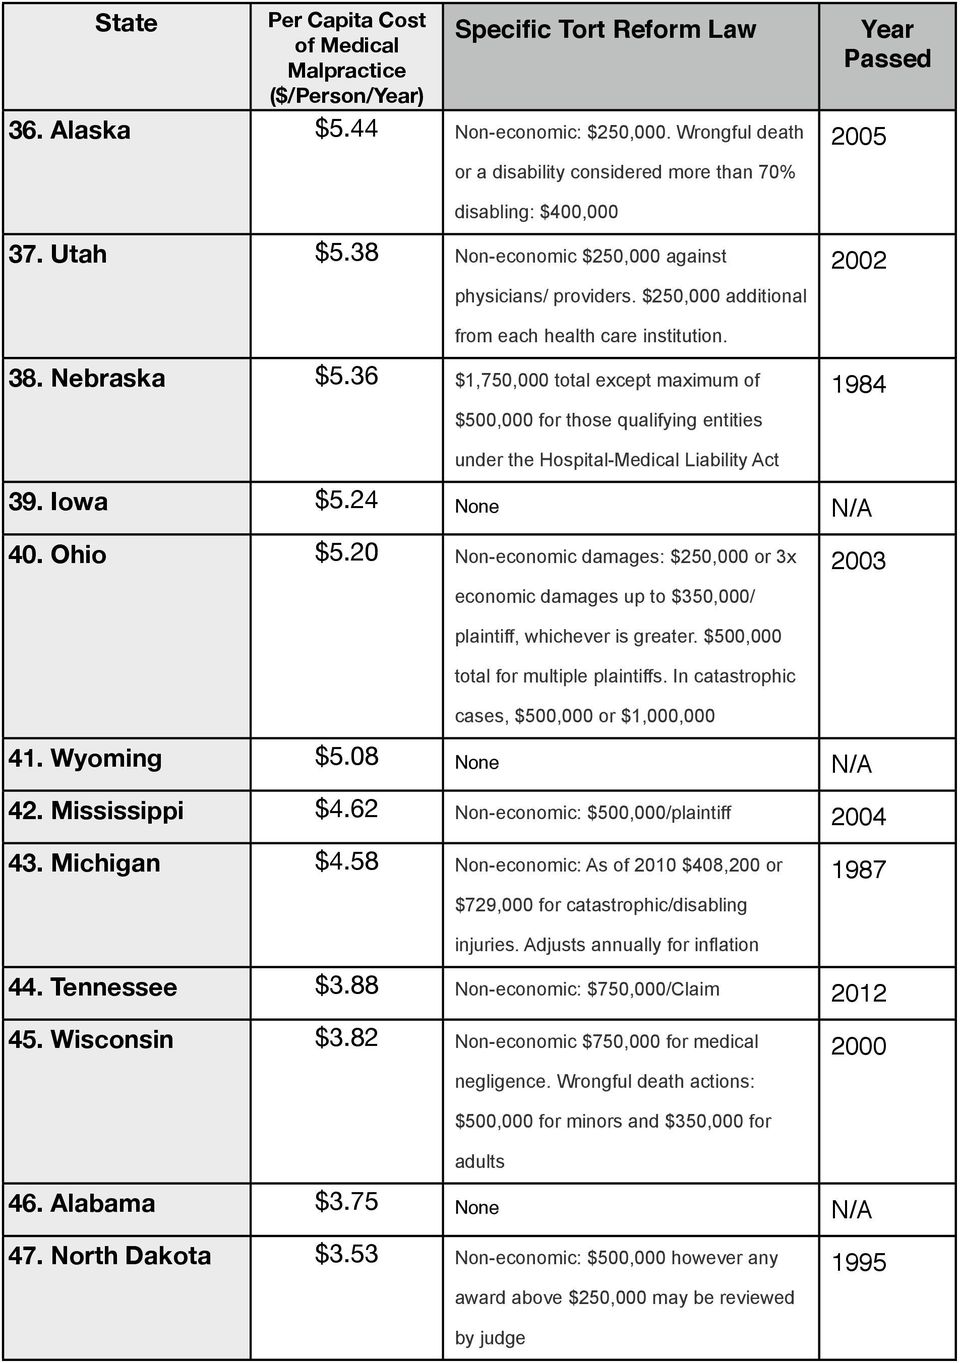 $250,000 additional 2002 from each health care institution. 38. Nebraska $5.